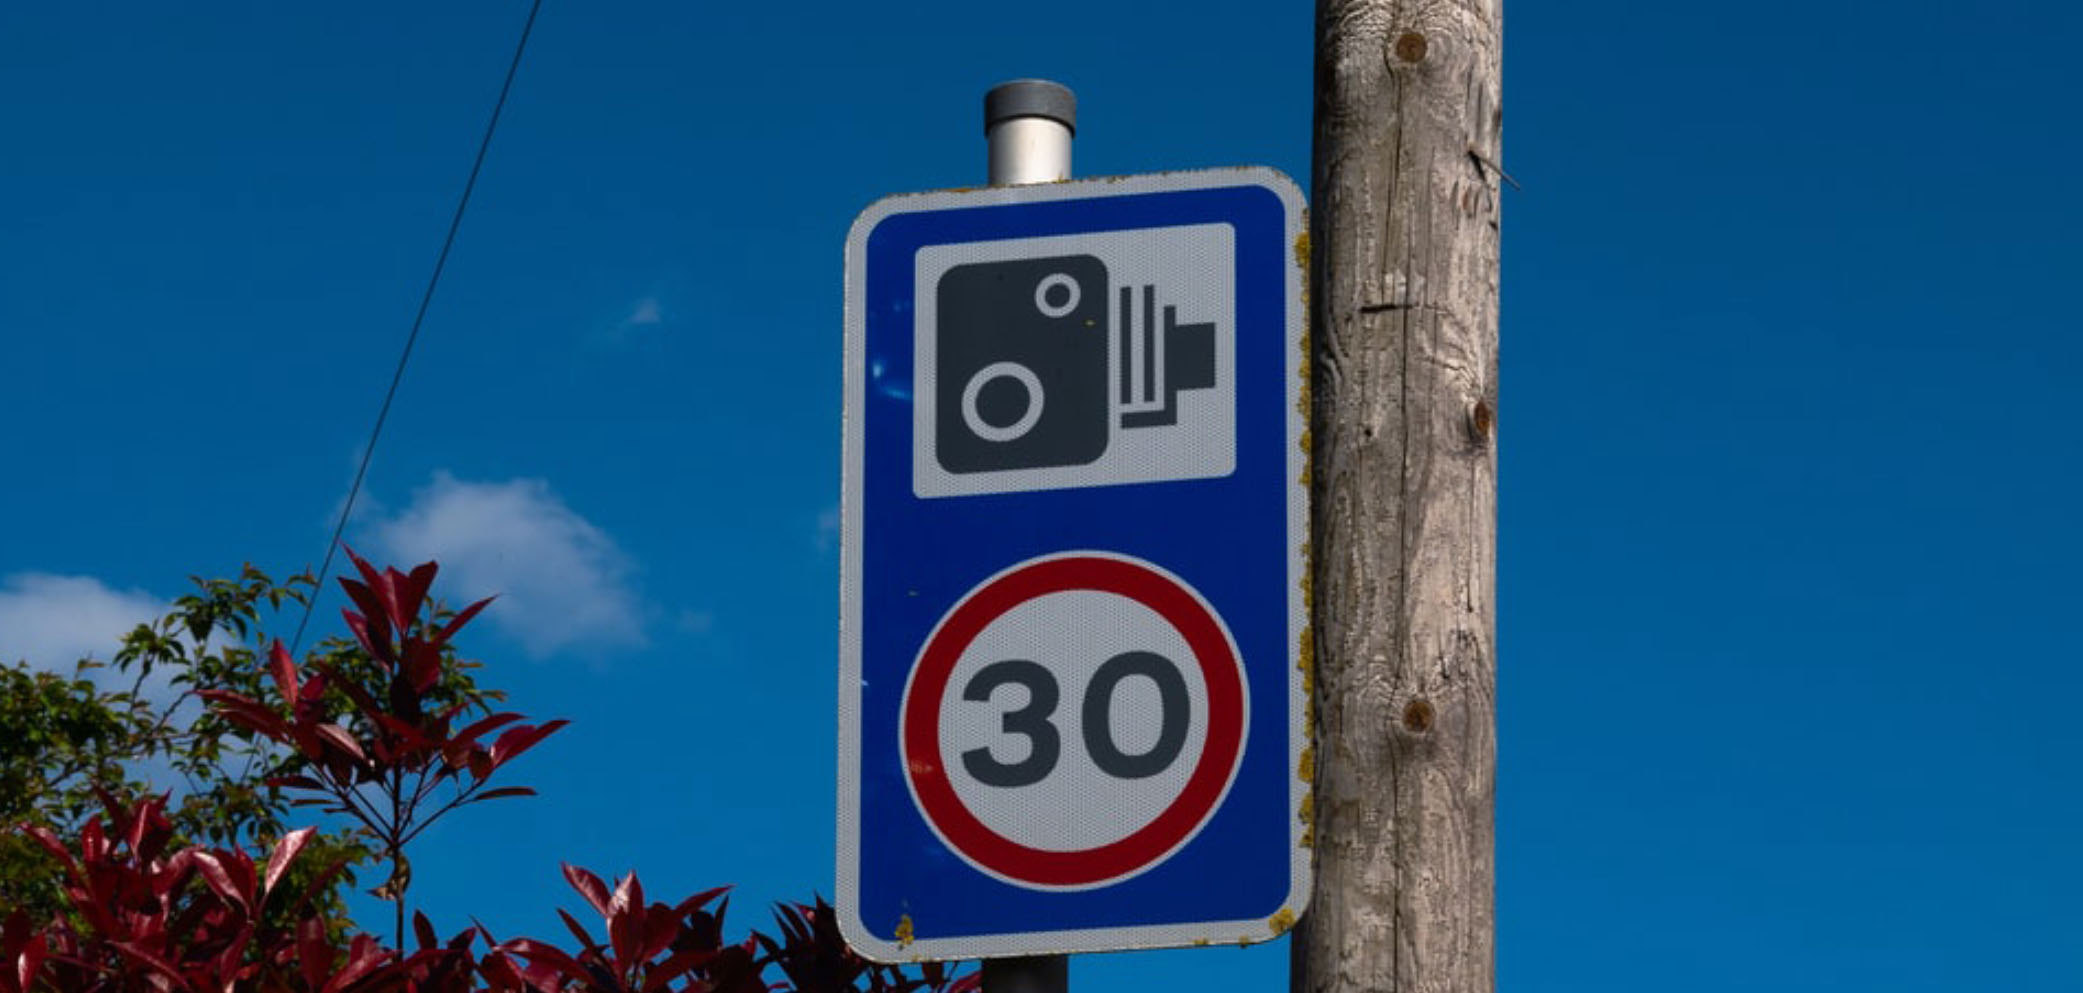 Contravention of Traffic Signs, Red Traffic Lights or Road Markings